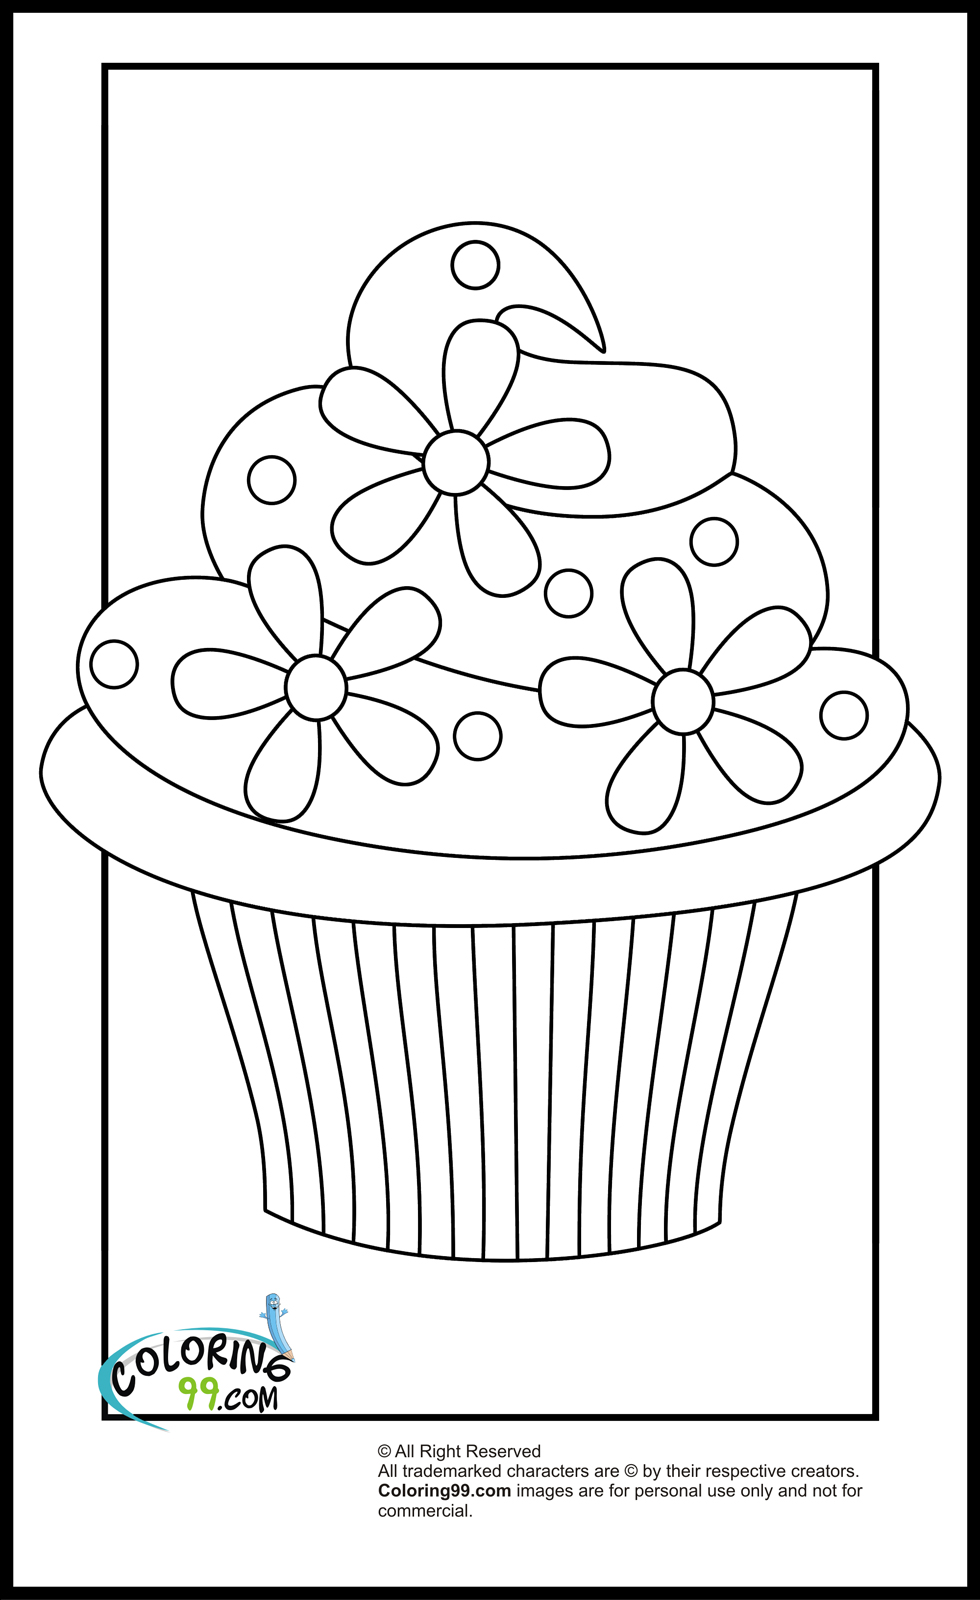 coloring sheet kids sing coloring pages best coloring pages for kids sheet coloring kids